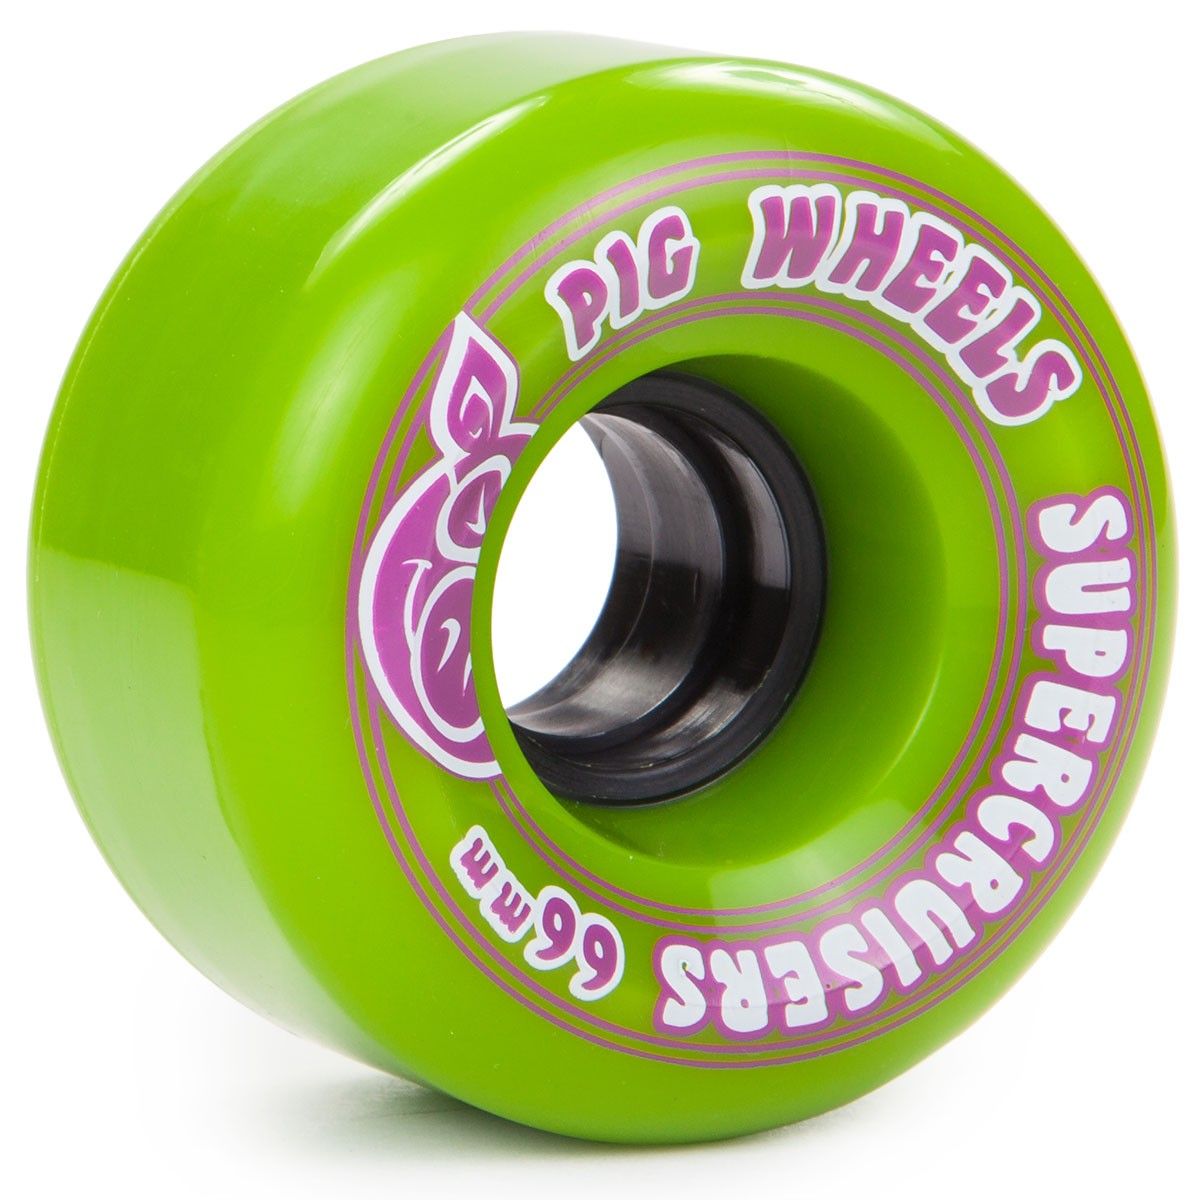 Pig SuperCruiser II Skateboard Wheels - Green - 66mm 85a